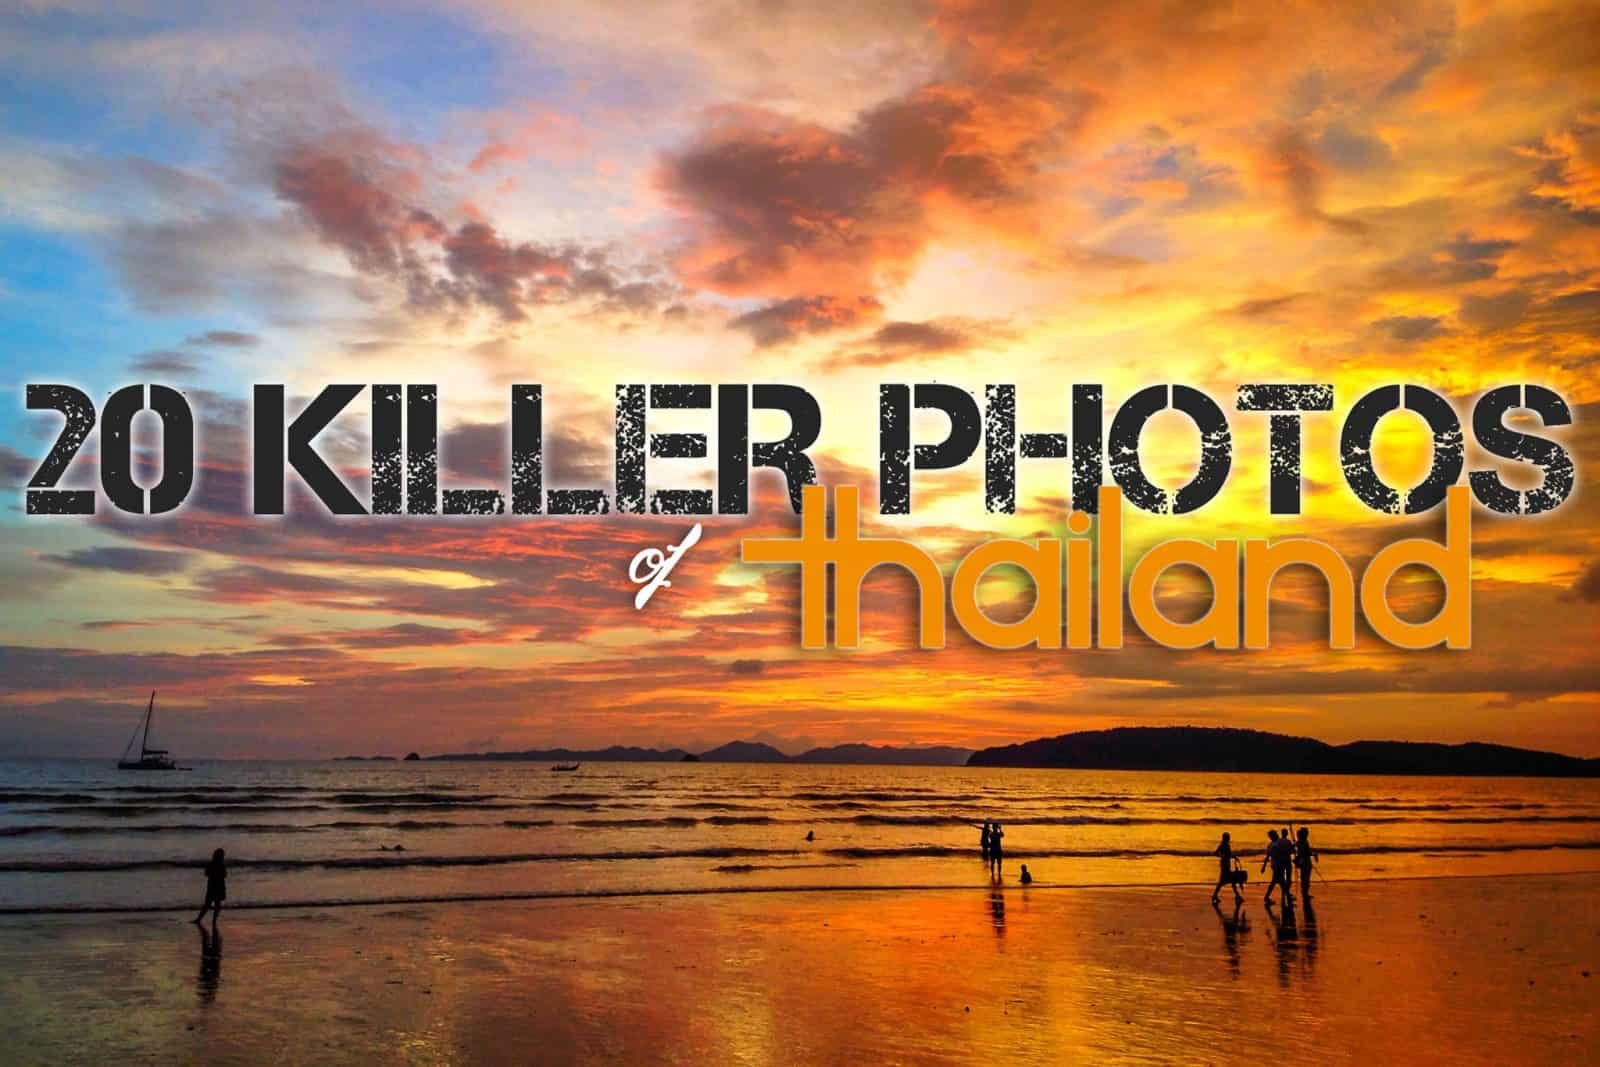 20 Killer Photos of Thailand